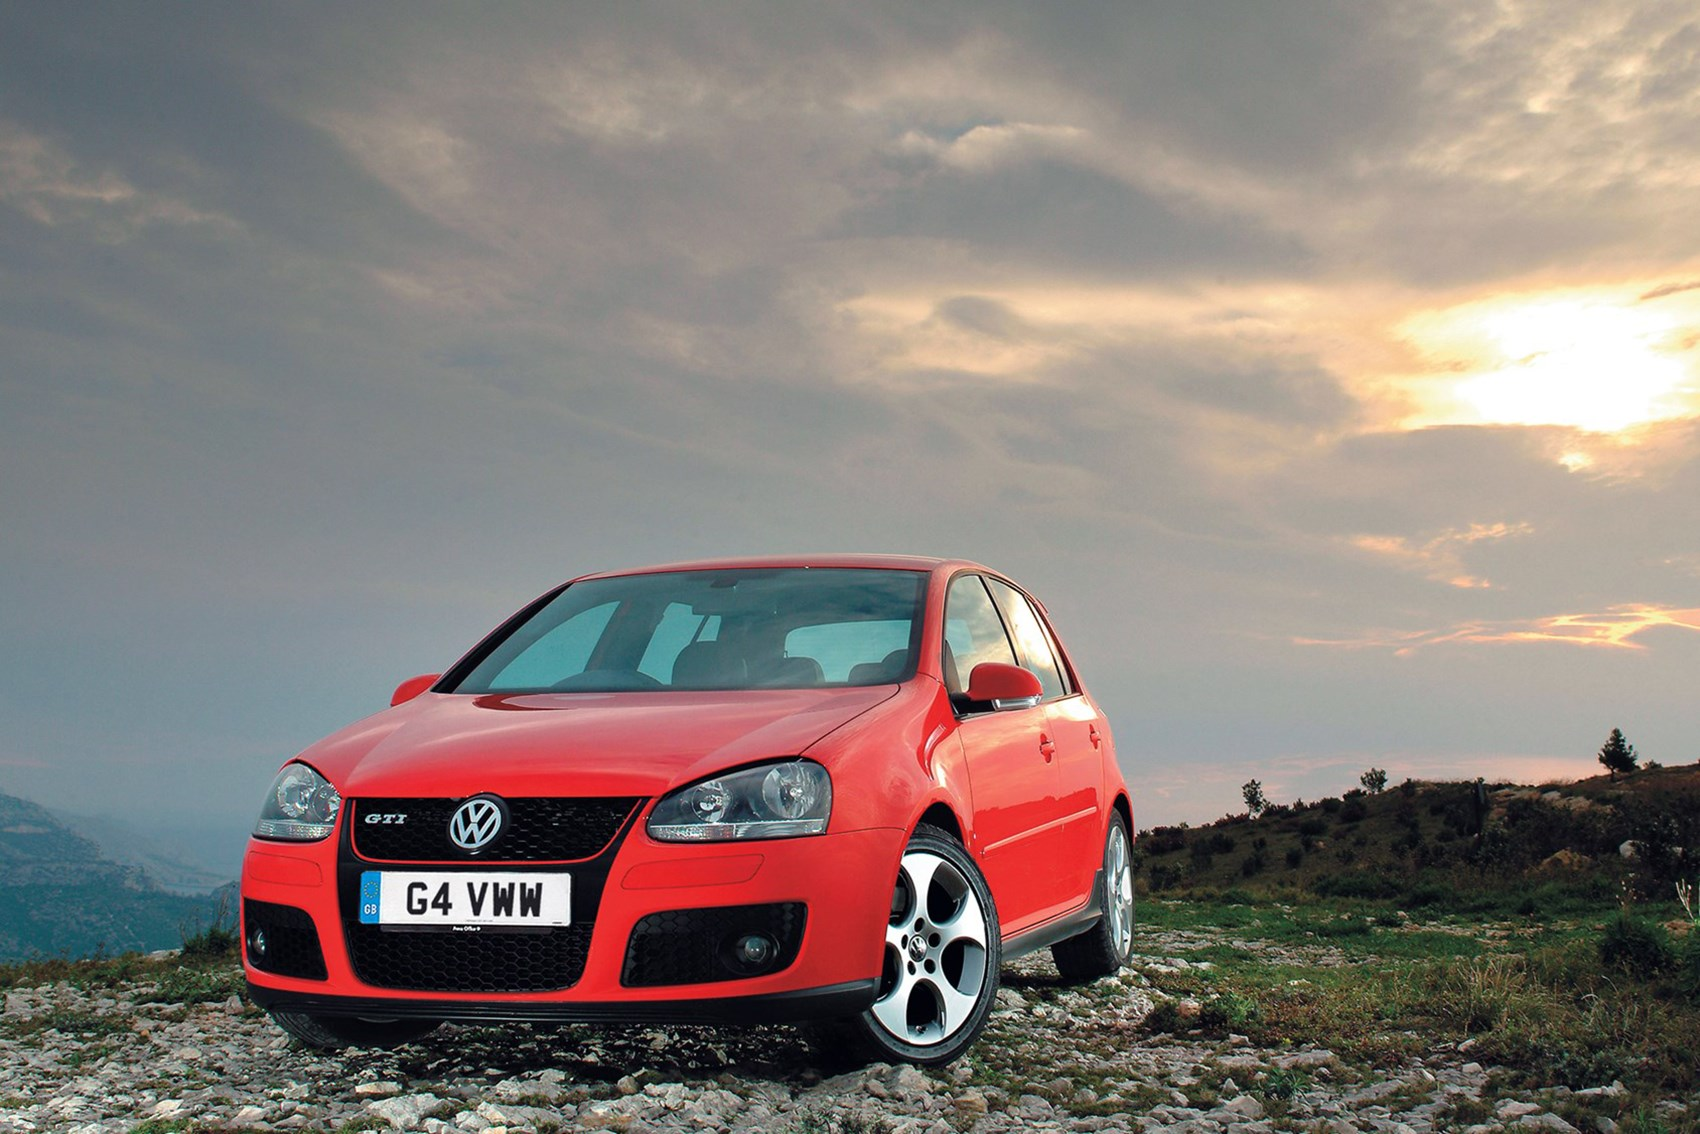 VW Golf GTI - used hatchbacks for less than £4k